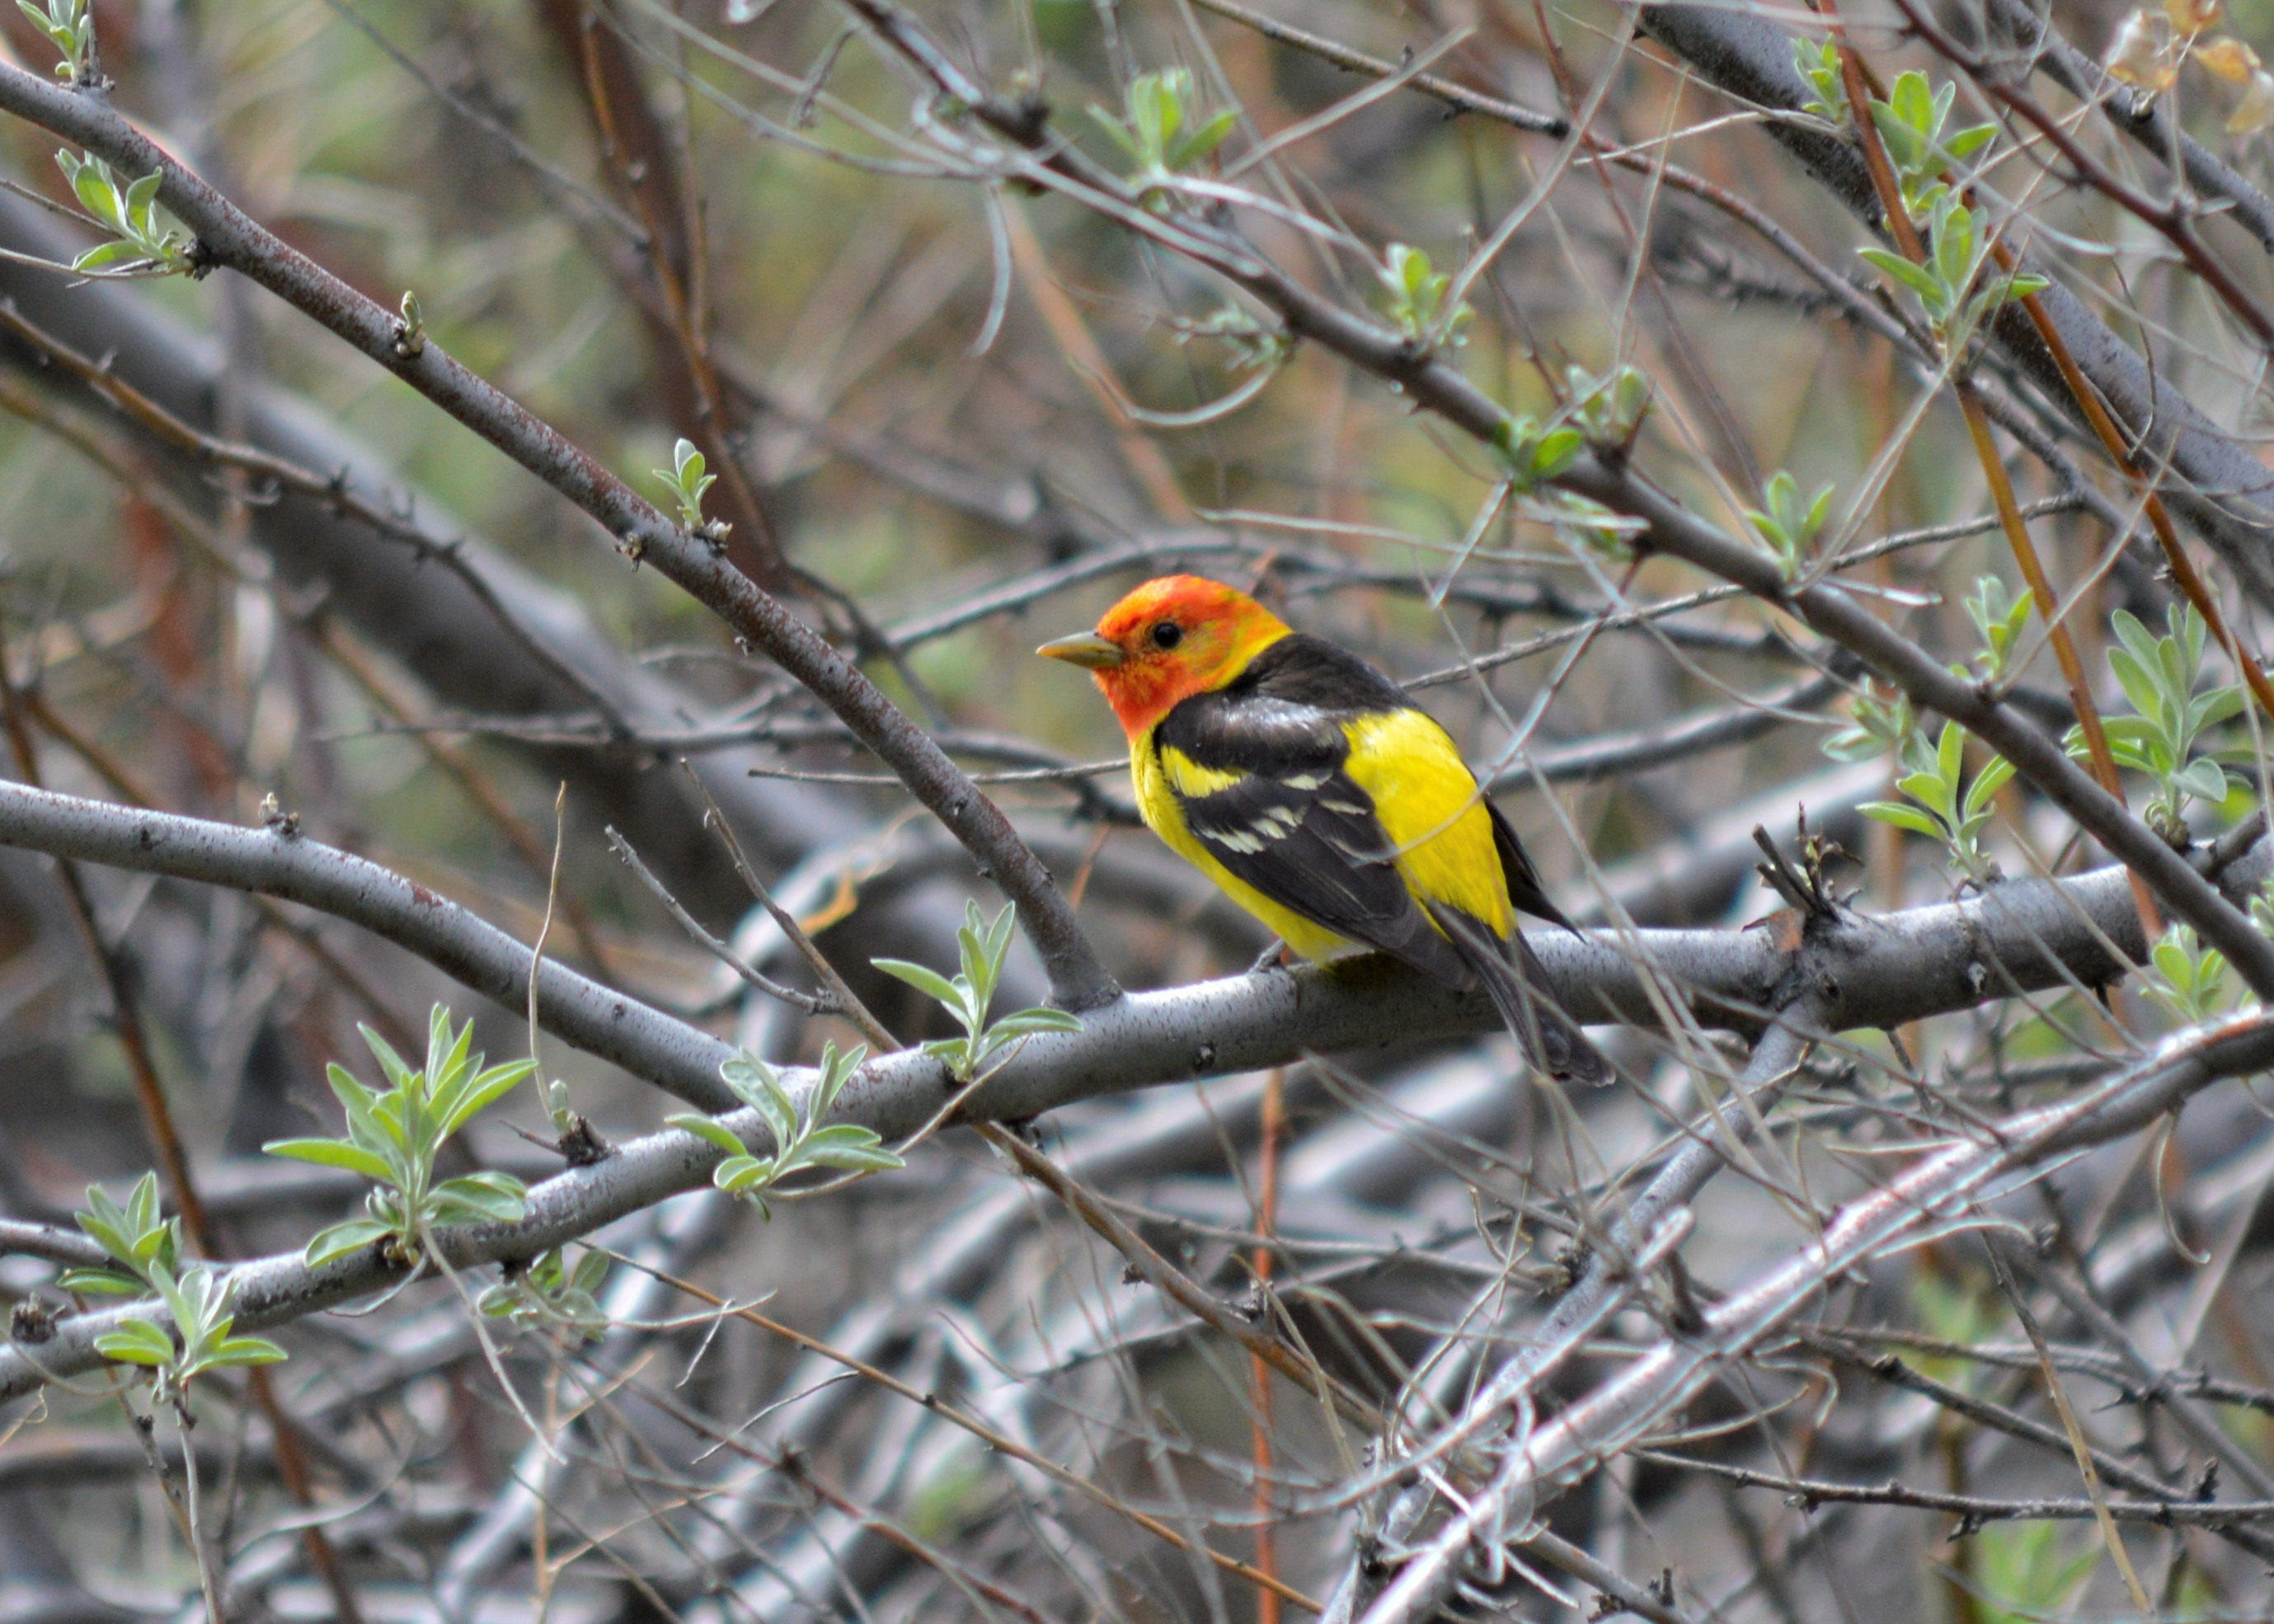 a brightly colored songbird with striking red head, yellow body, black wings